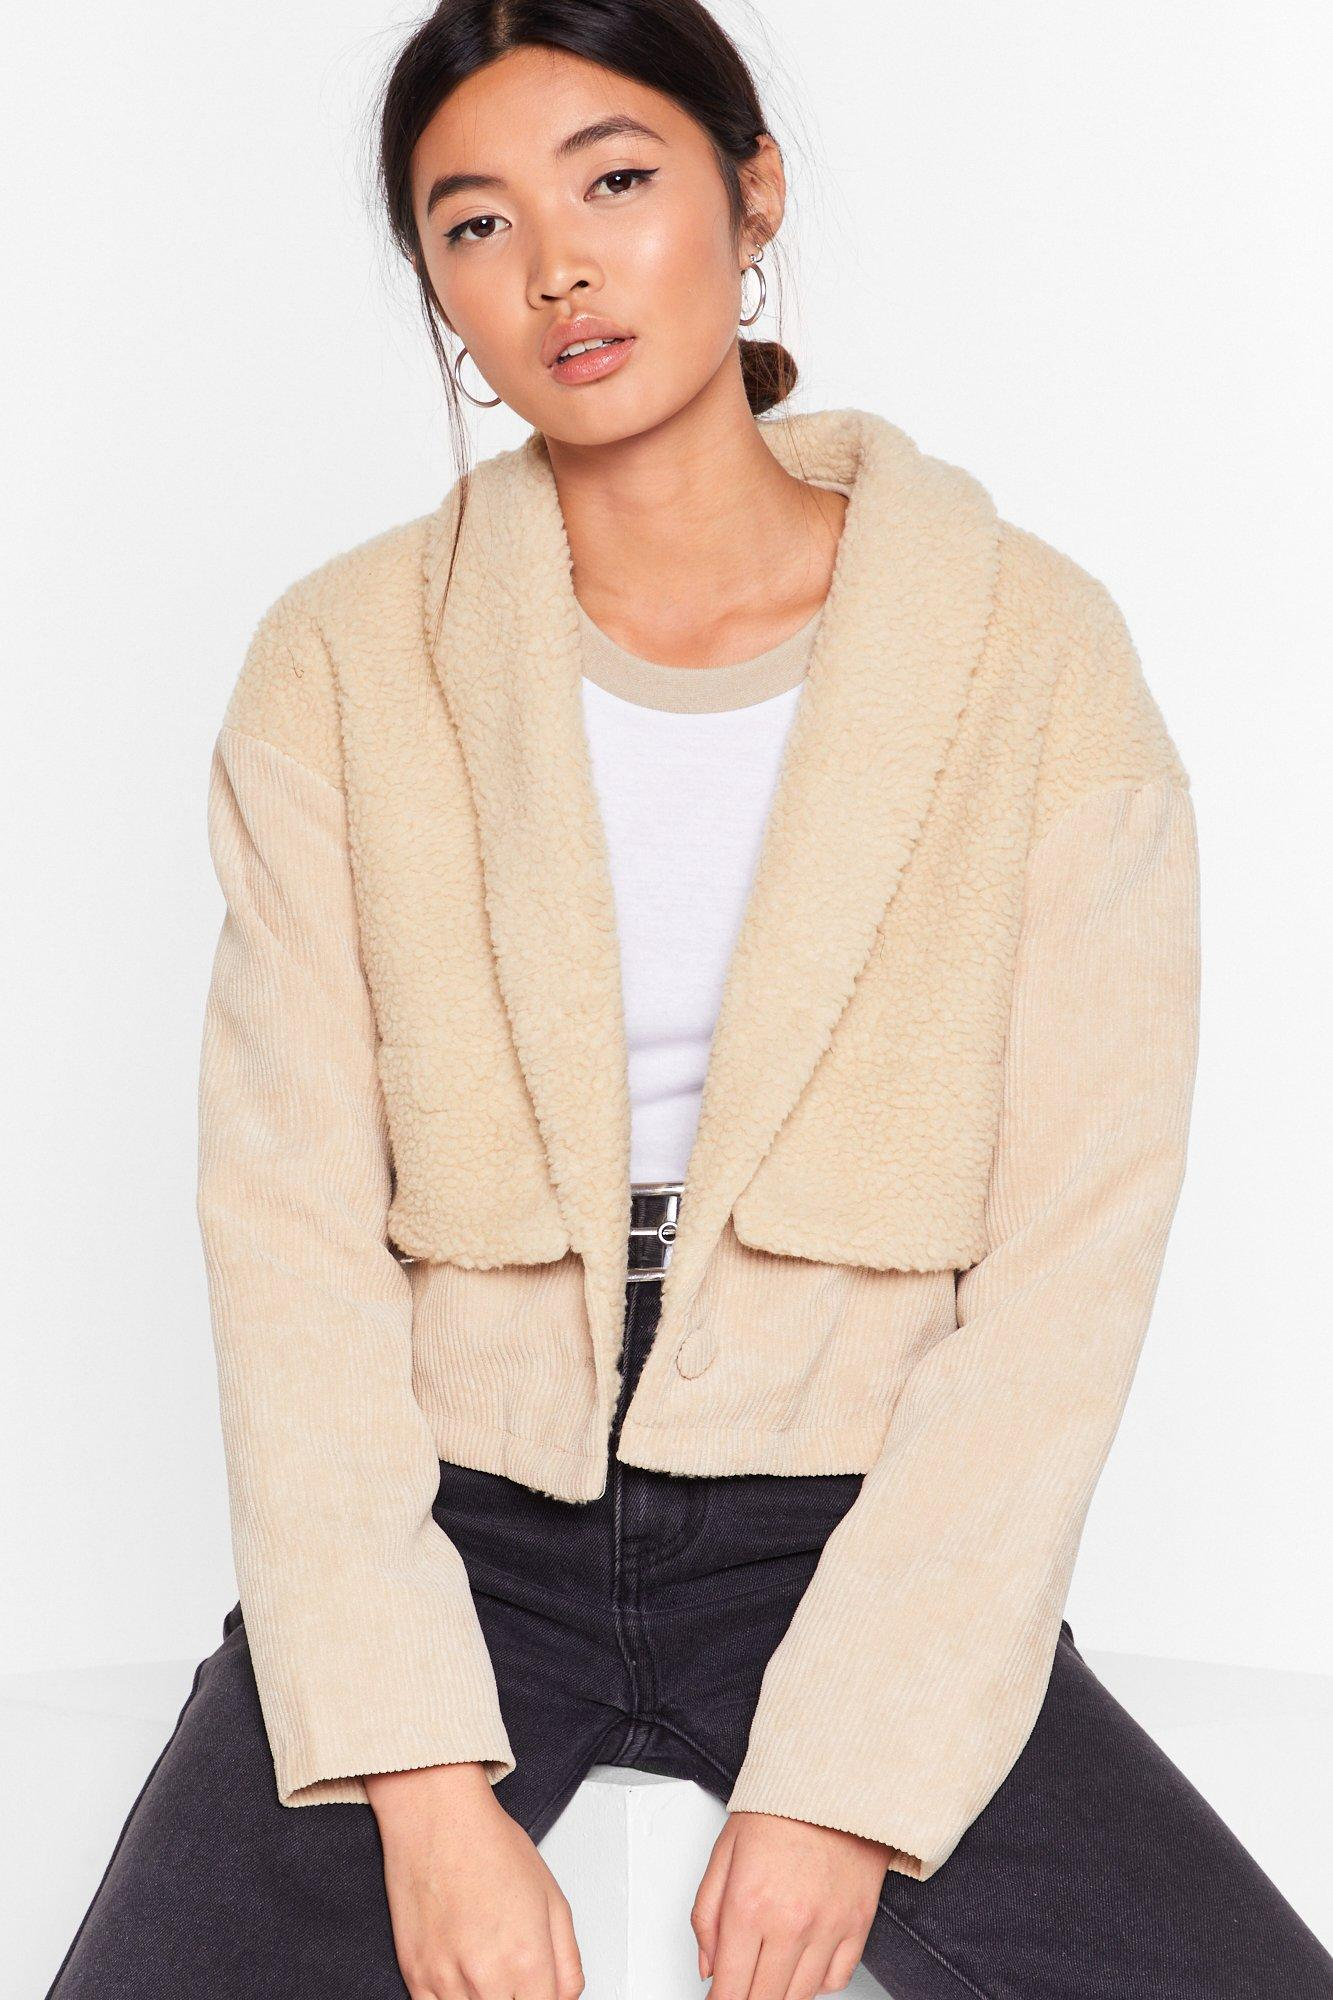 Image of Struck a Cord-uroy Faux Shearling Jacket